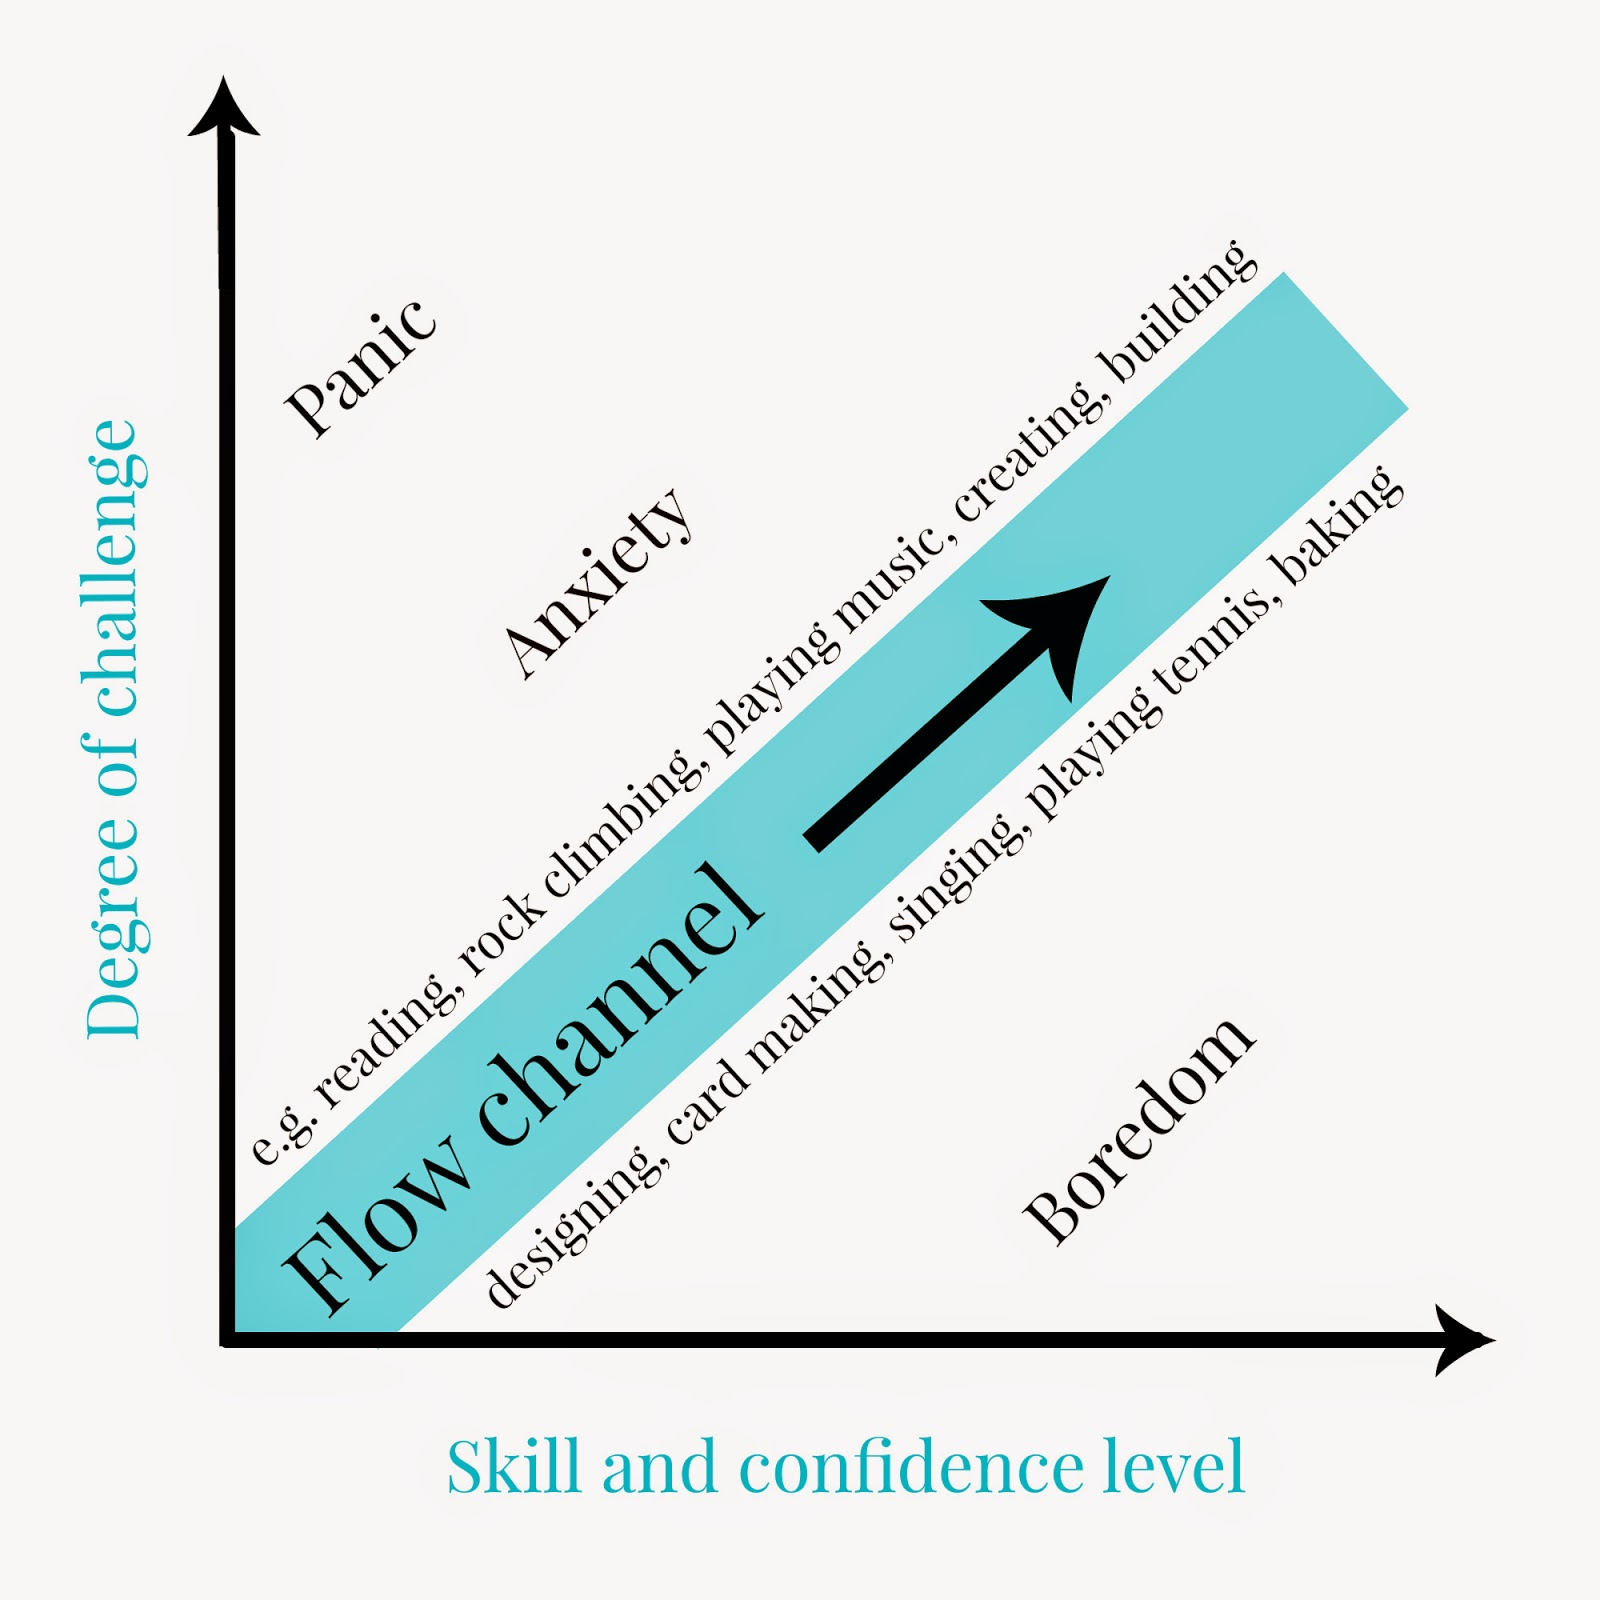 Leaders can change the challenge or the person's capability to maximize flow.   https://www.tolstoytherapy.com/2014/07/mihaly-csikszentmihalyis-idea-of-flow-reading-fiction-diagram.html